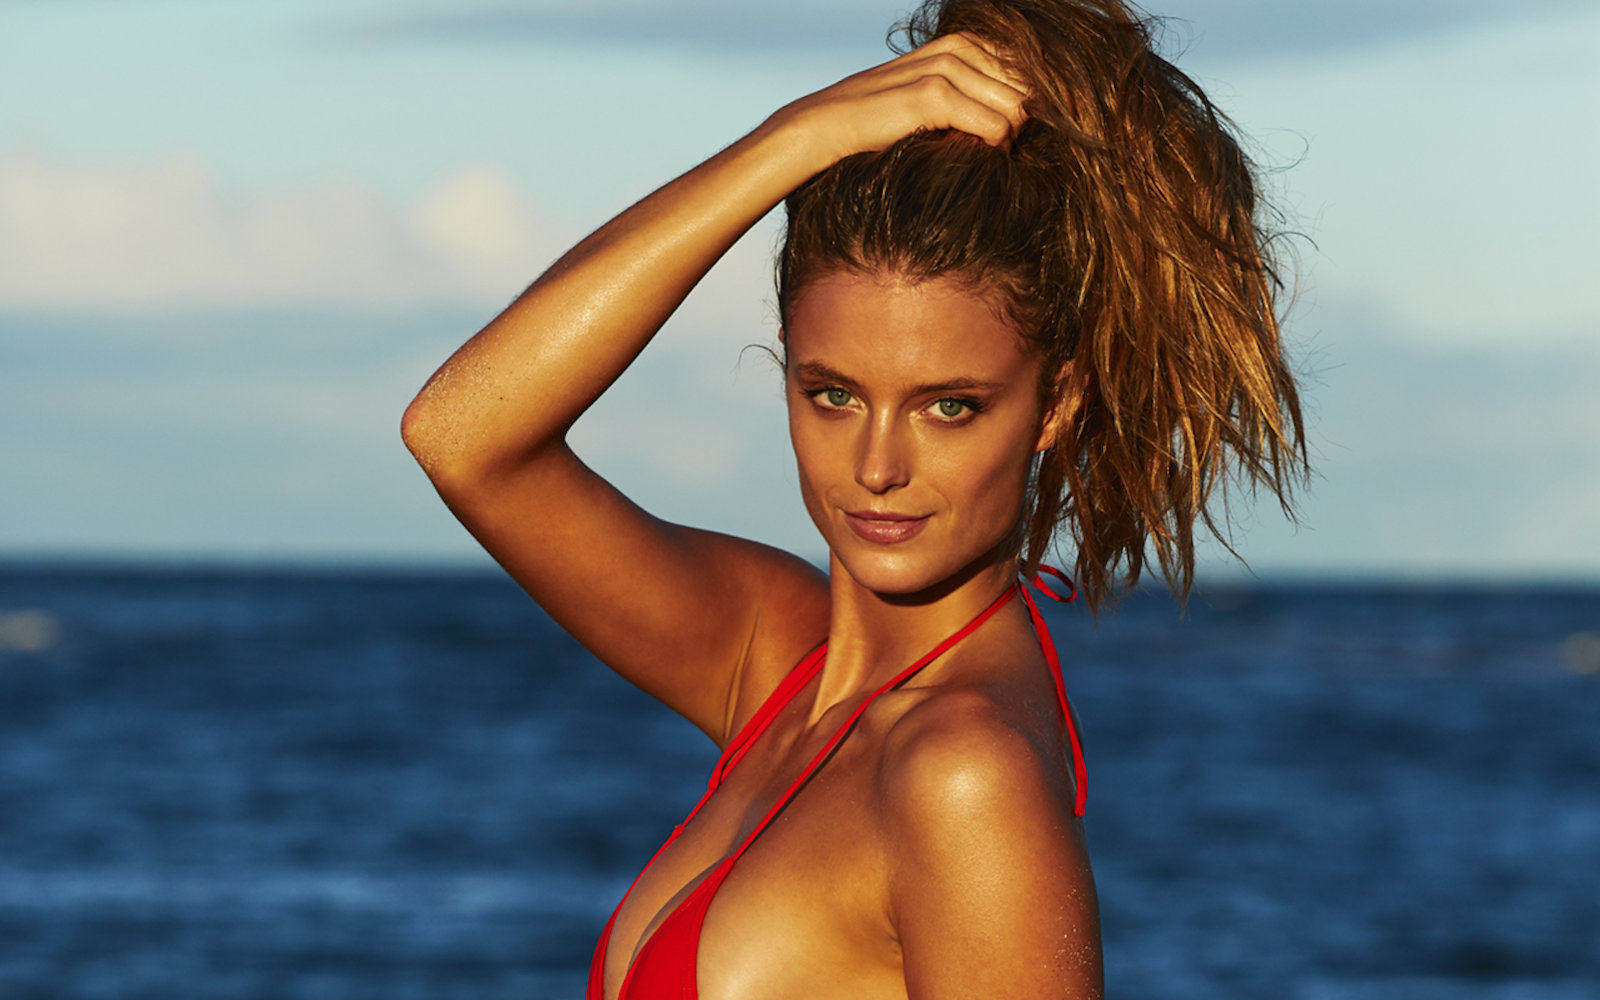 kate bock illustrated swimsuit sports si issue swimsuits beach title